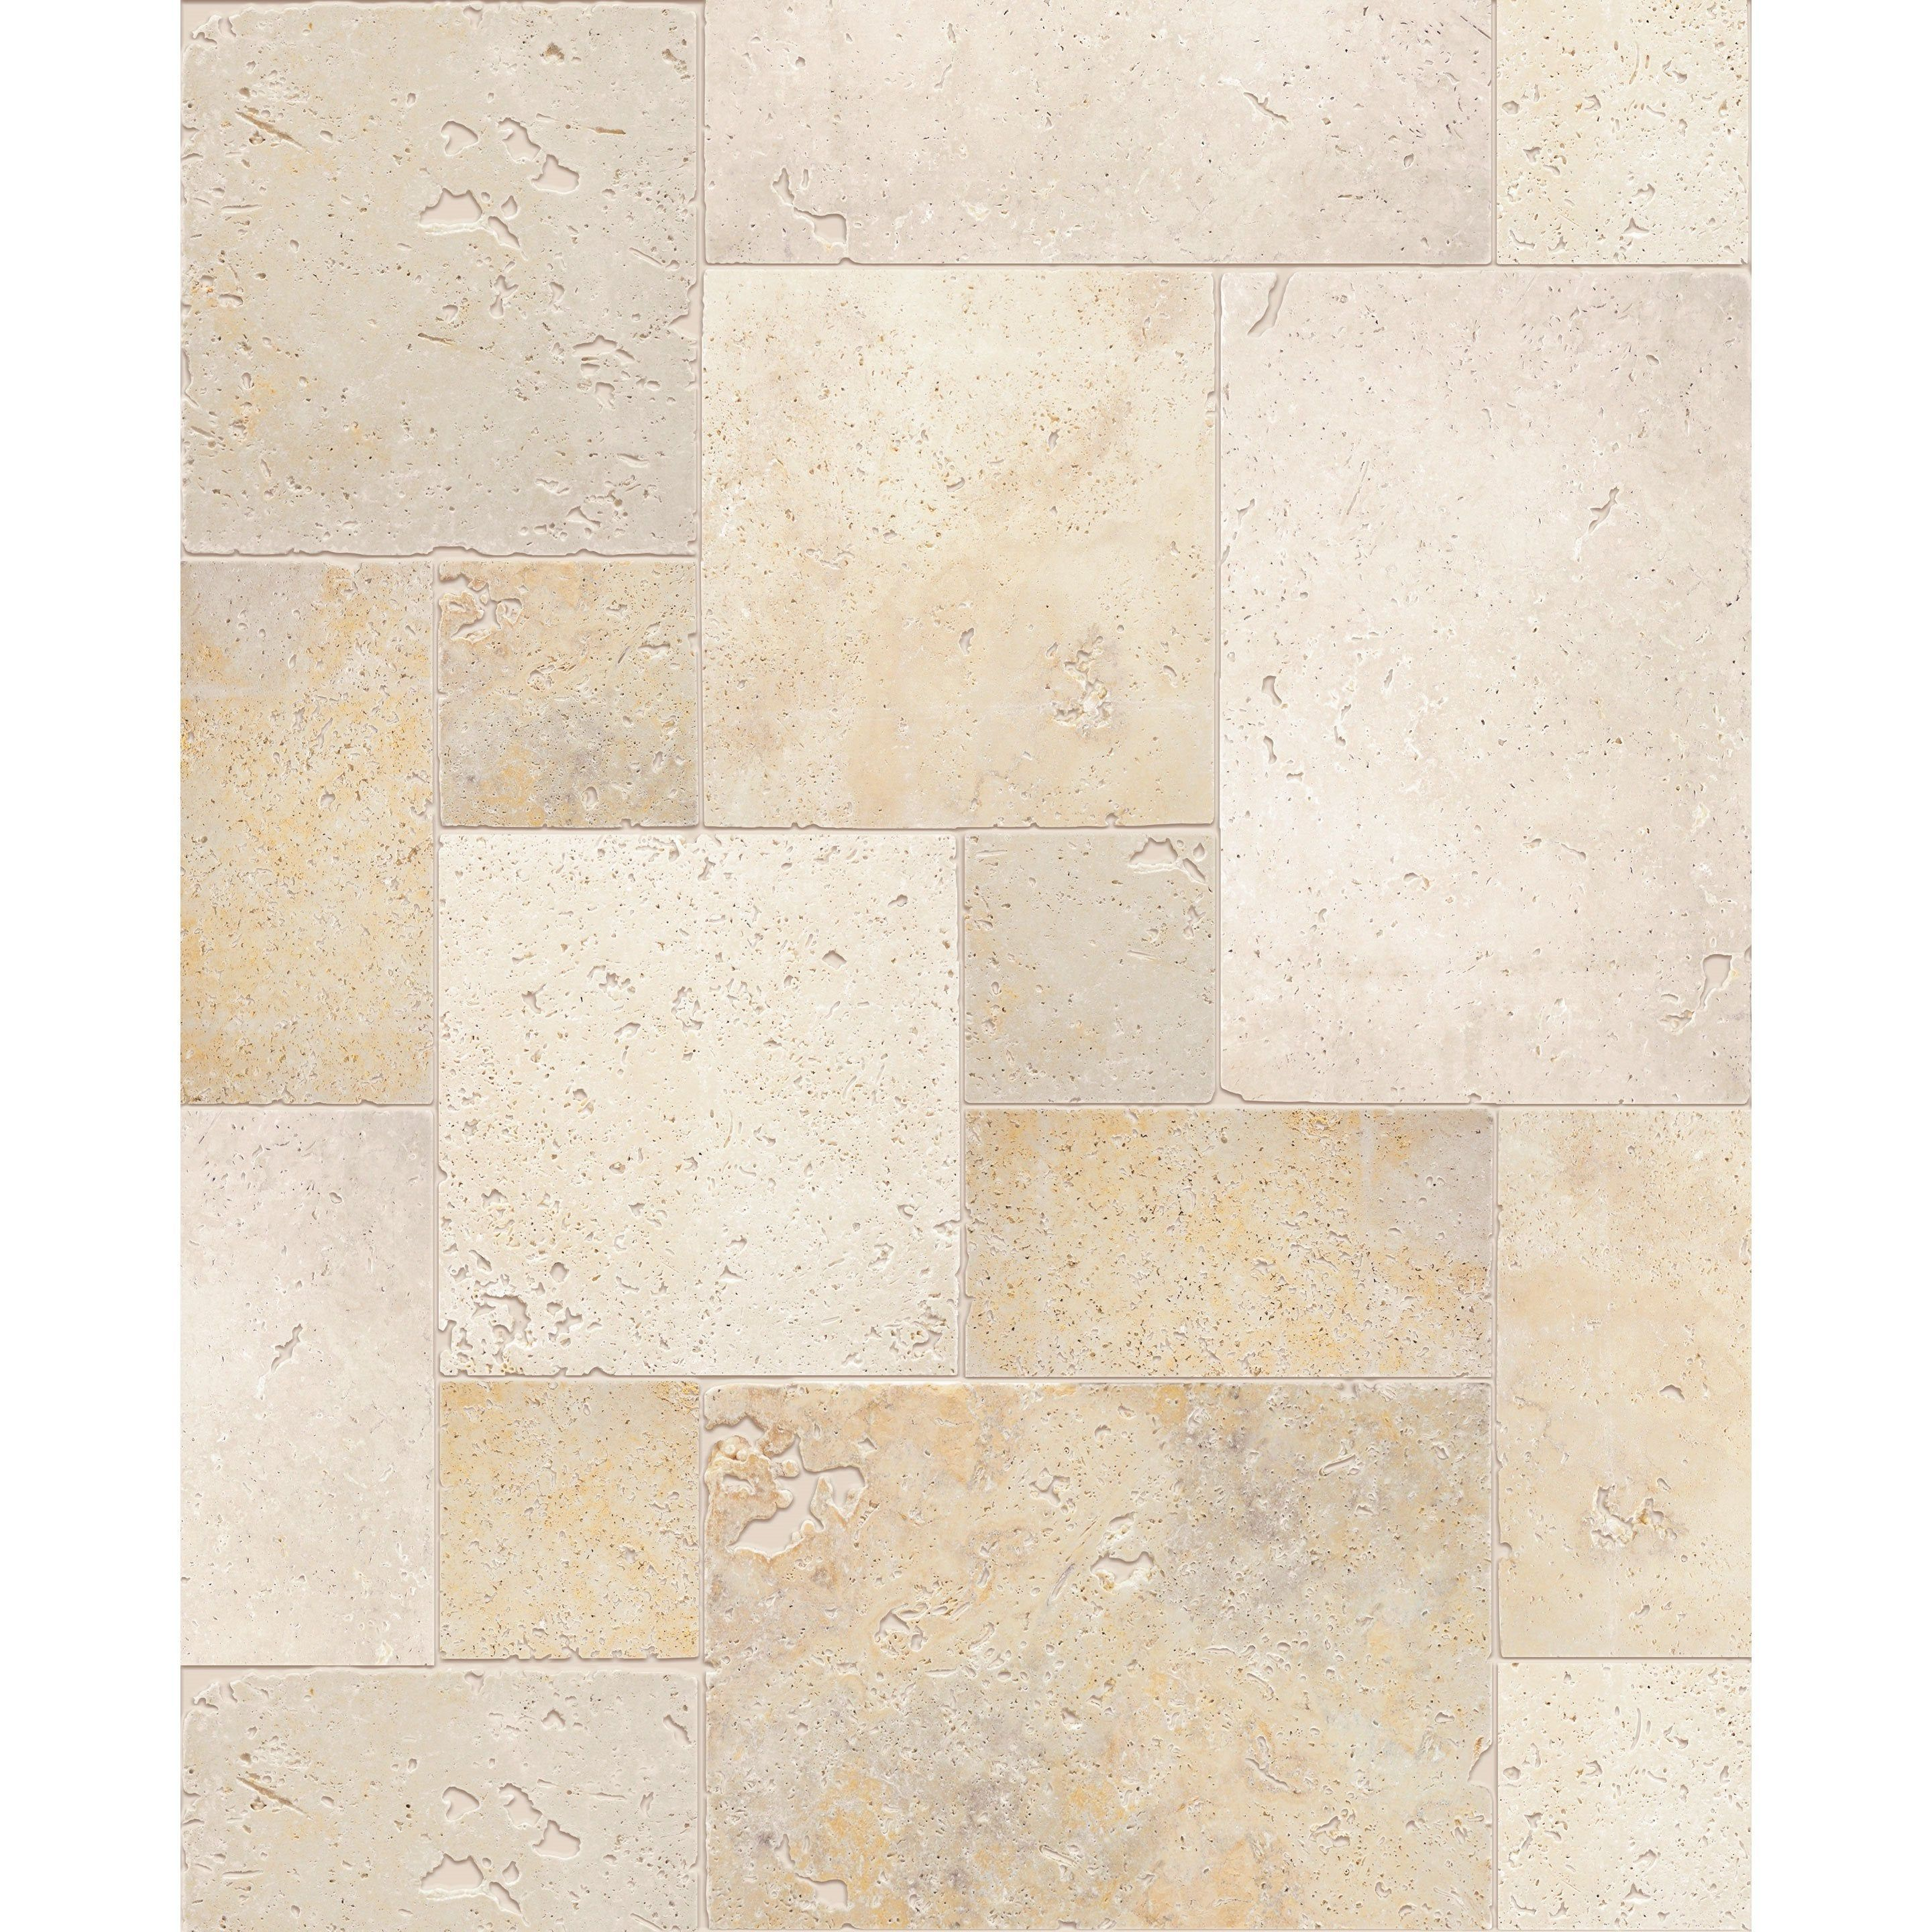 Travertin Sol Mur Effet Pierre Beige Opus Rustique Multiformat L 20 3xl 20 3cm En 2020 Travertin Sol Rustique